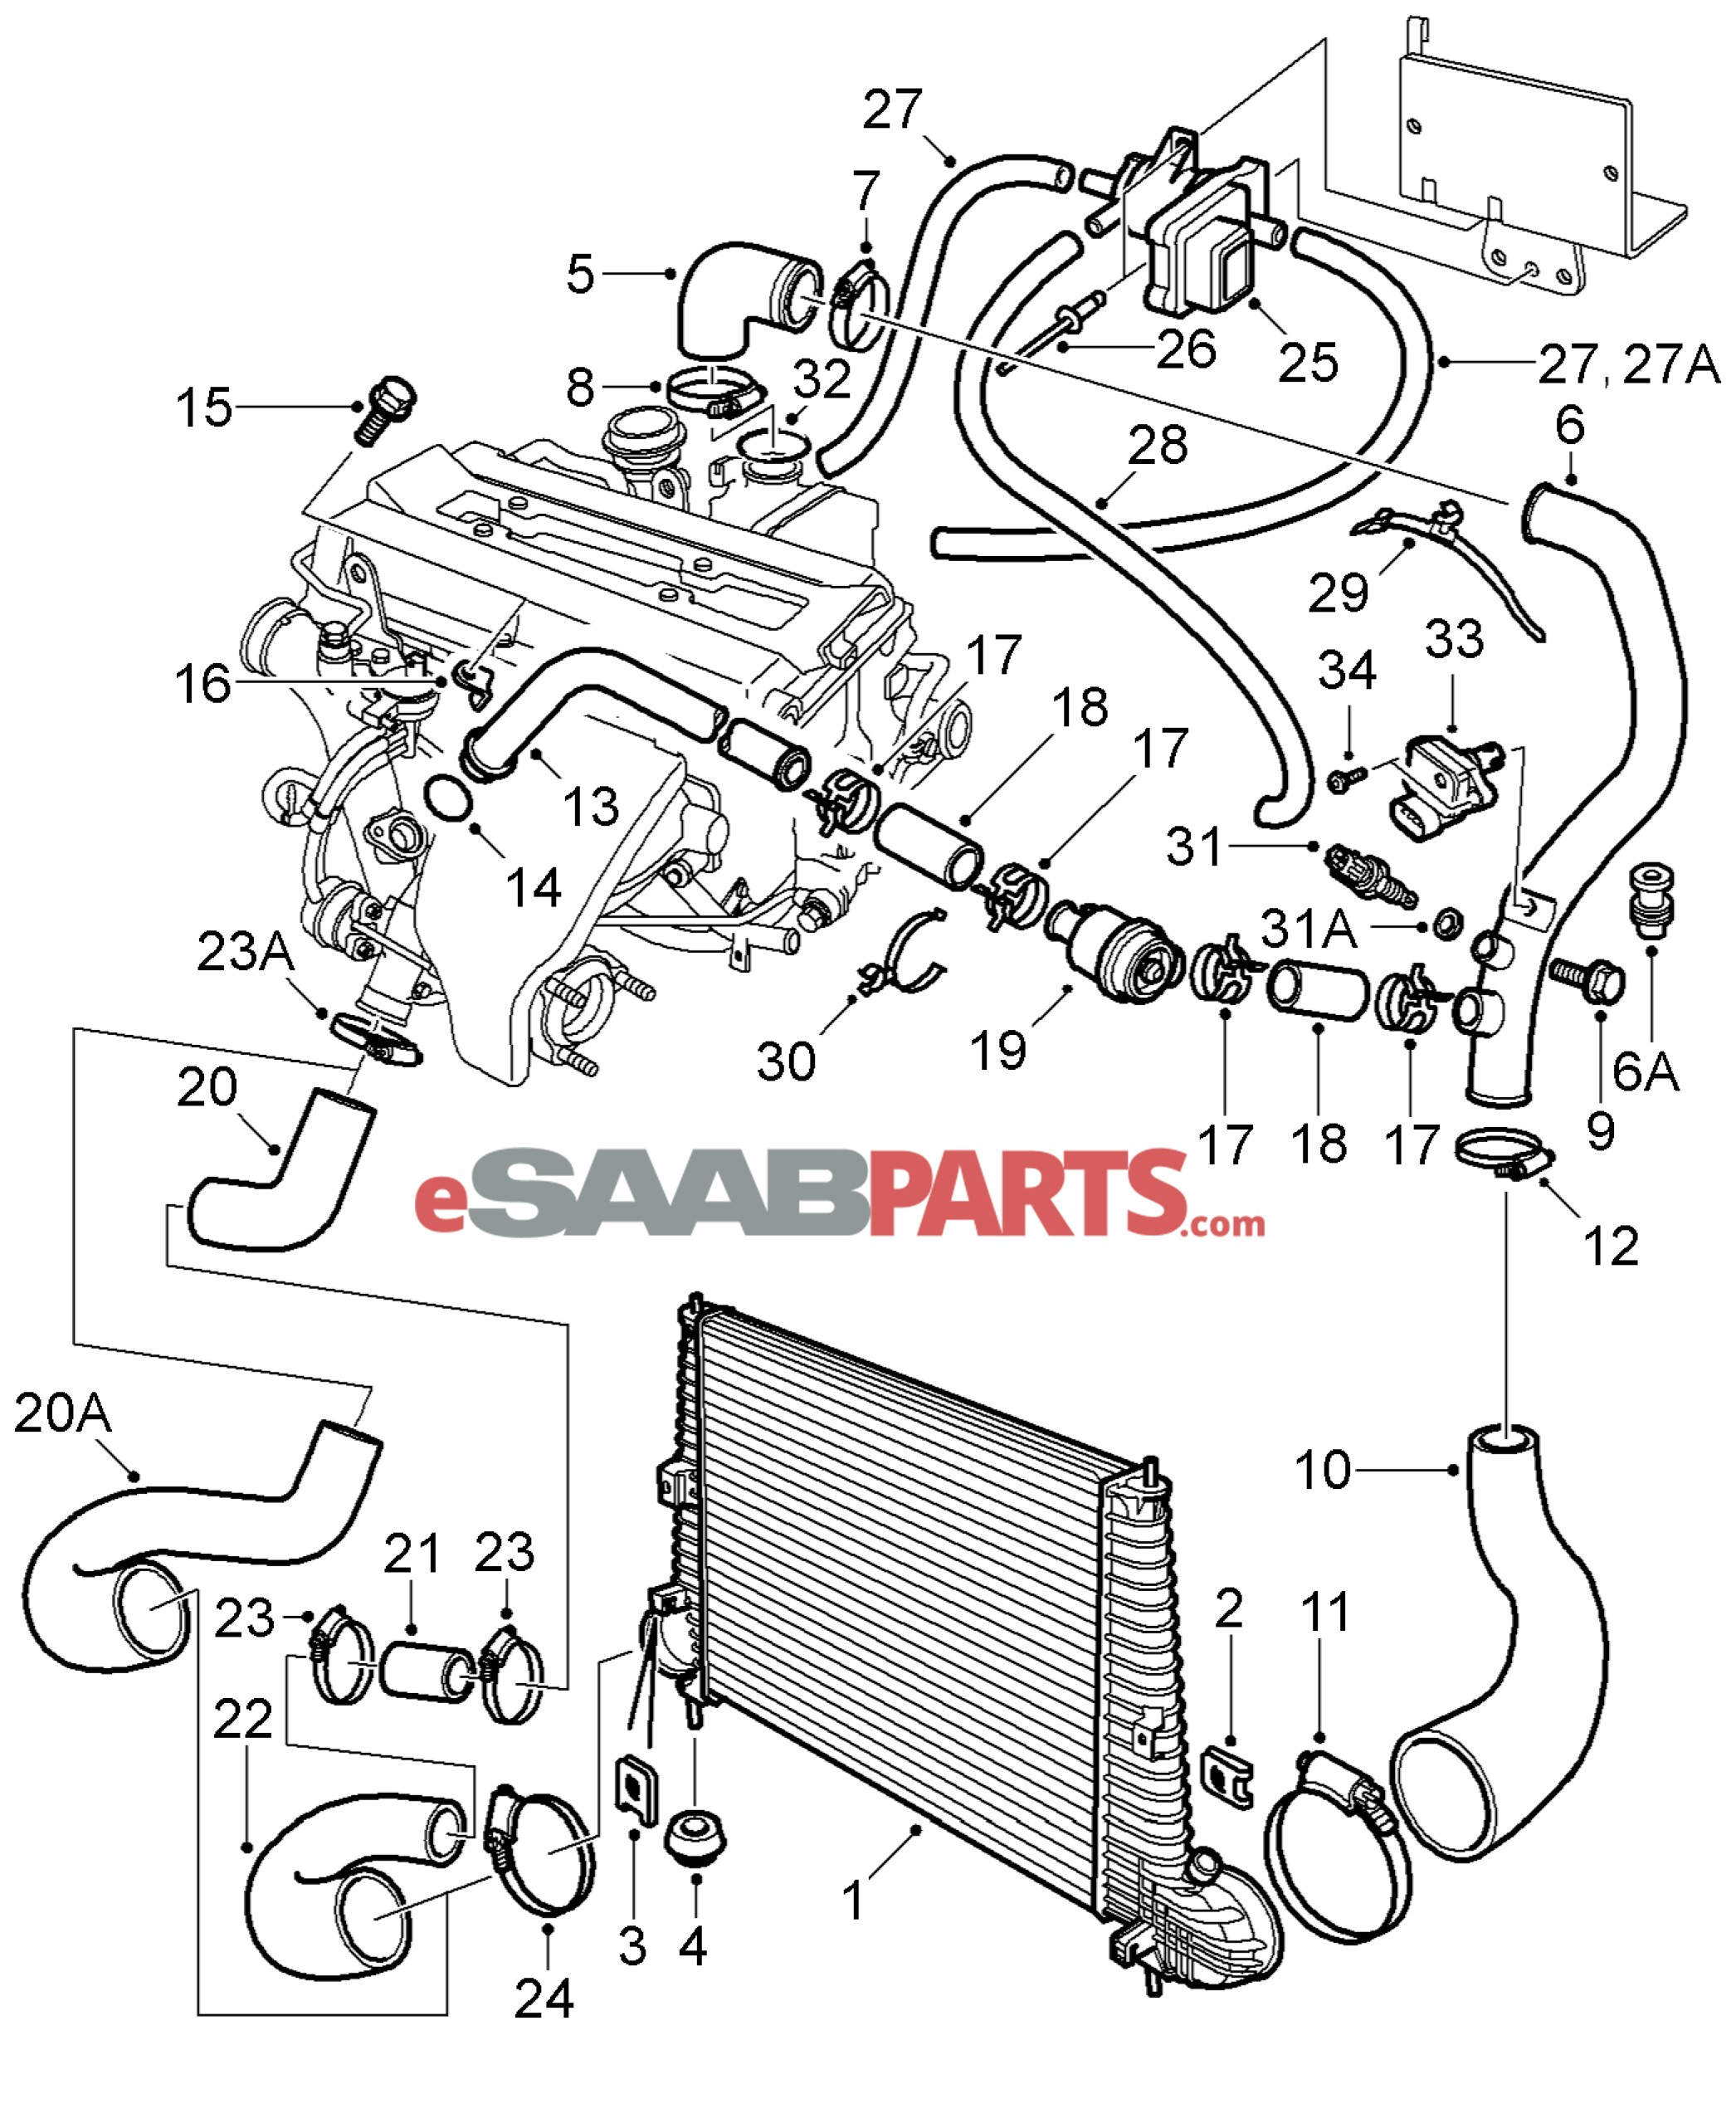 North Star Steam Cleaner Wiring Diagram Saab 9 3 Fuse Box Auto Electrical Engine